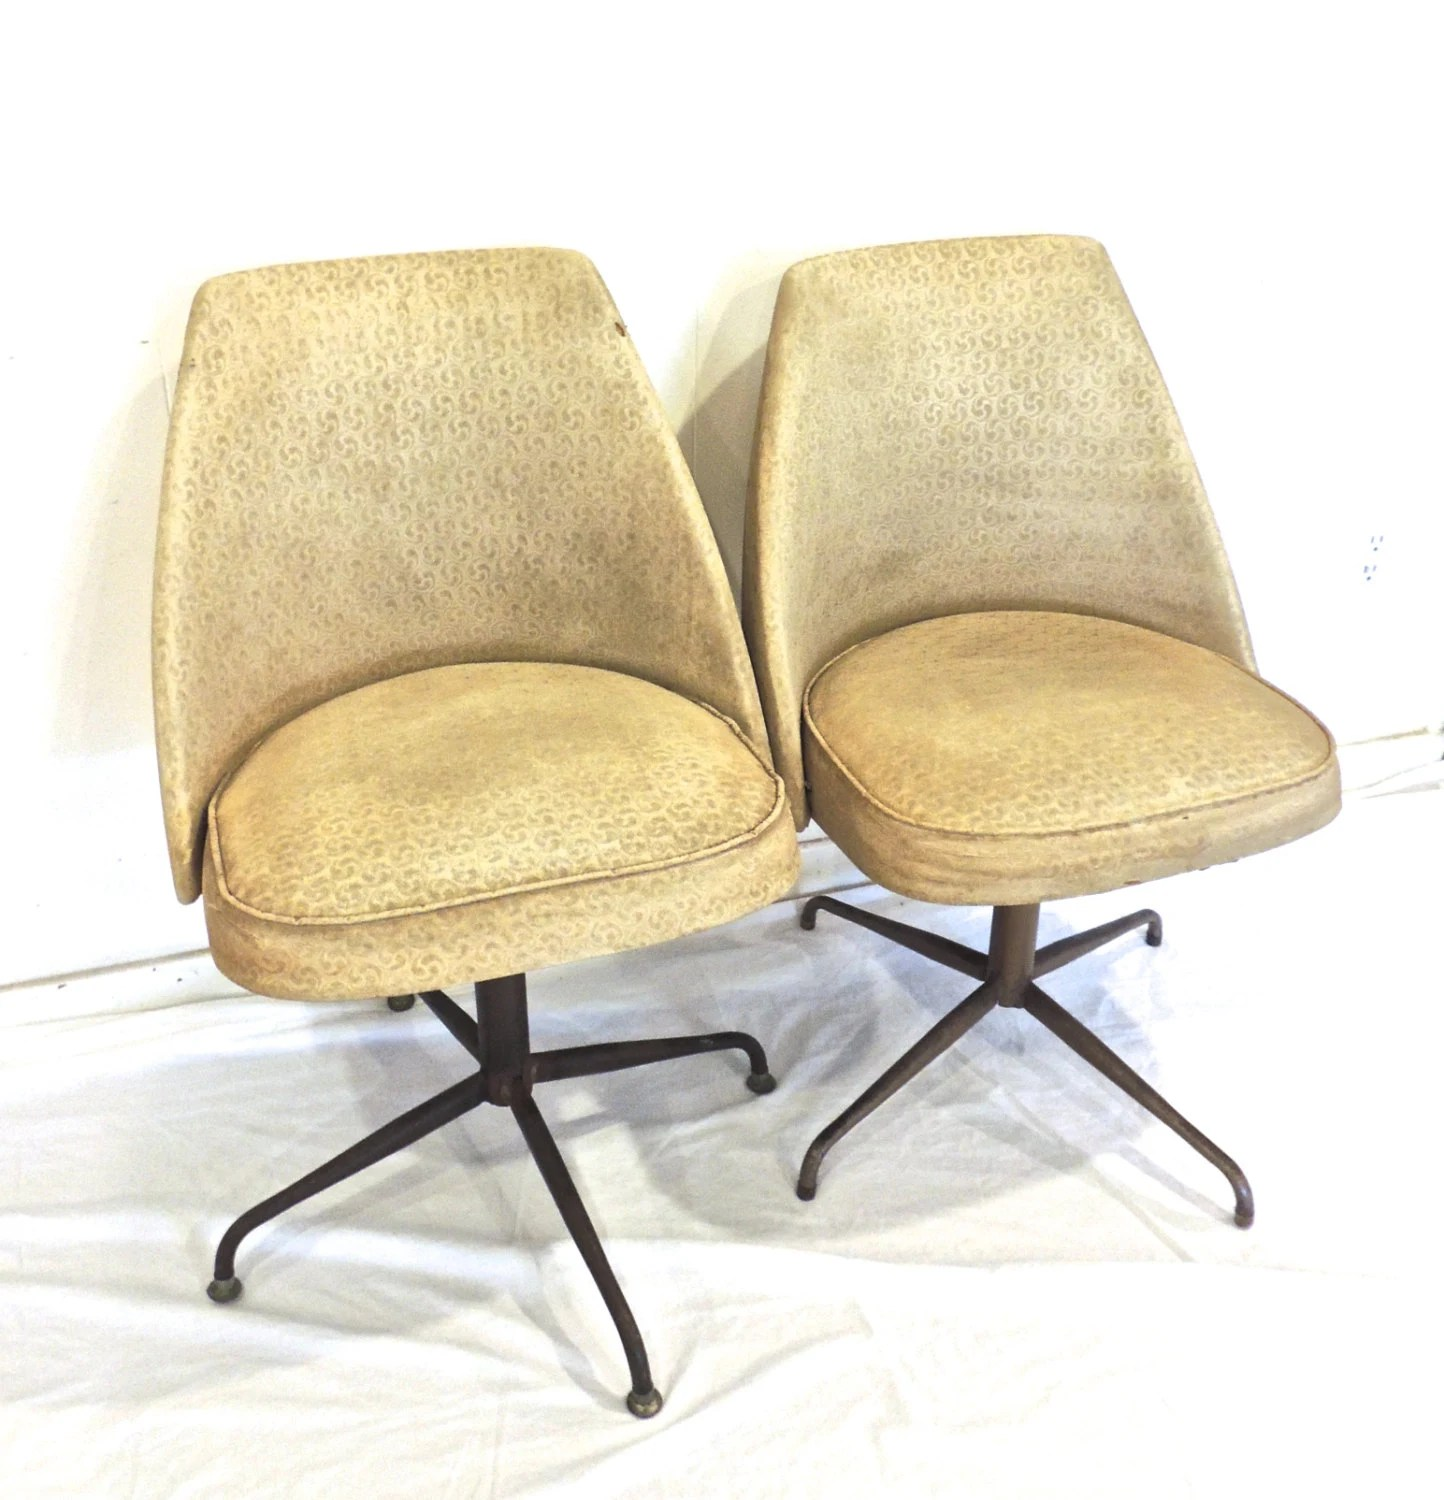 swivel pod chair chevron dining covers vintage atomic chairs 1950s 60s mid century by